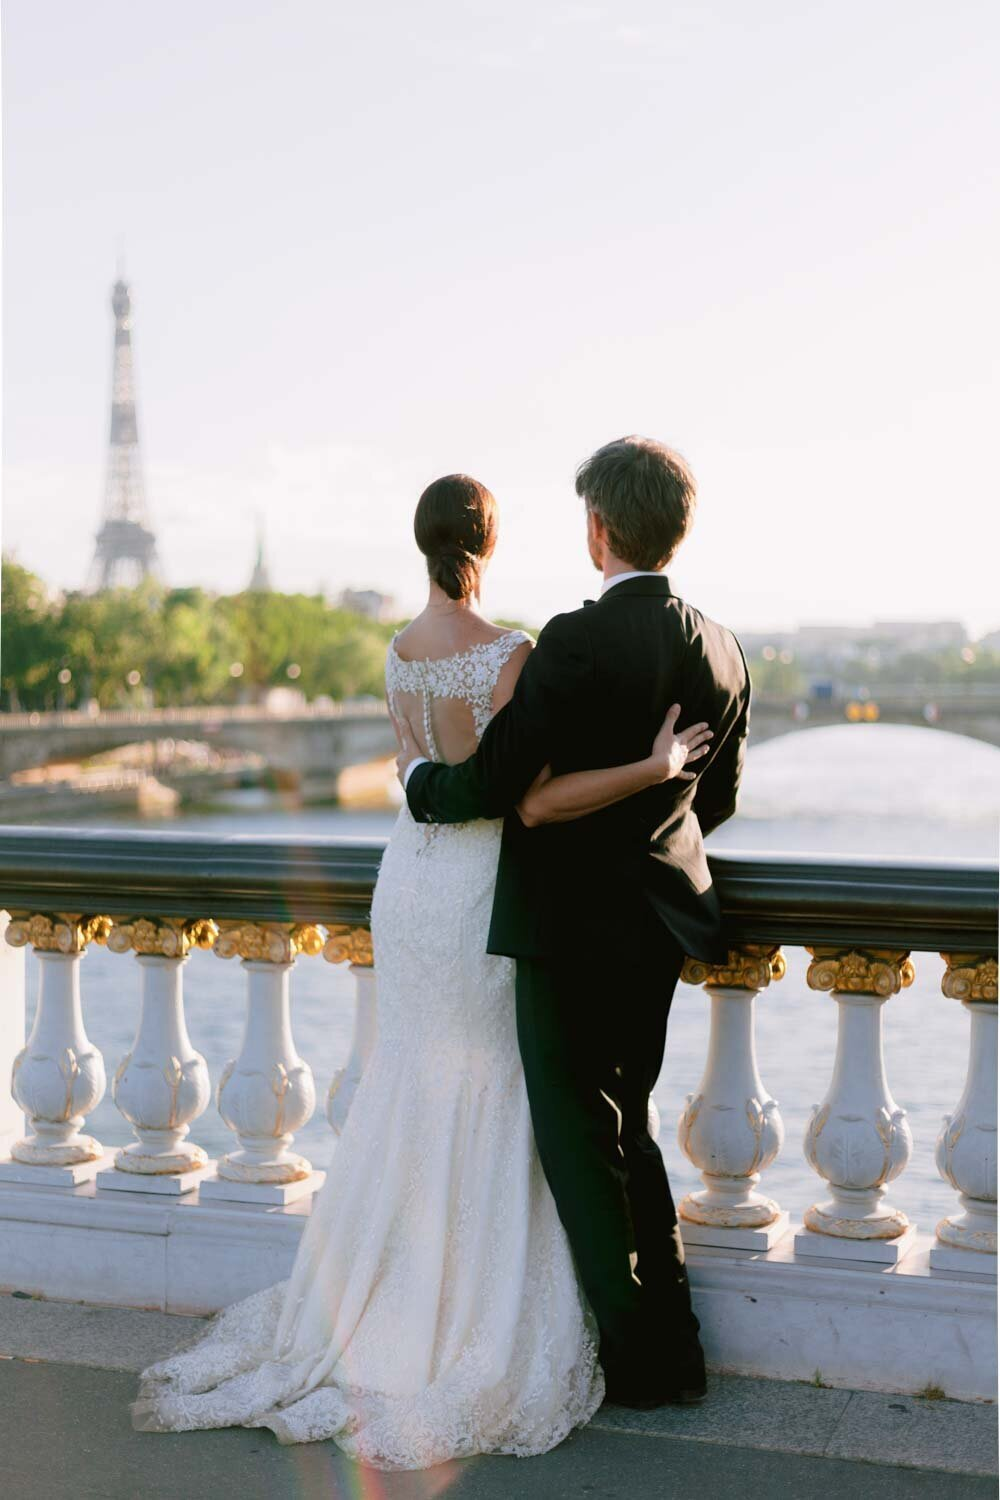 Engagement-elopement-paris-photographer-24